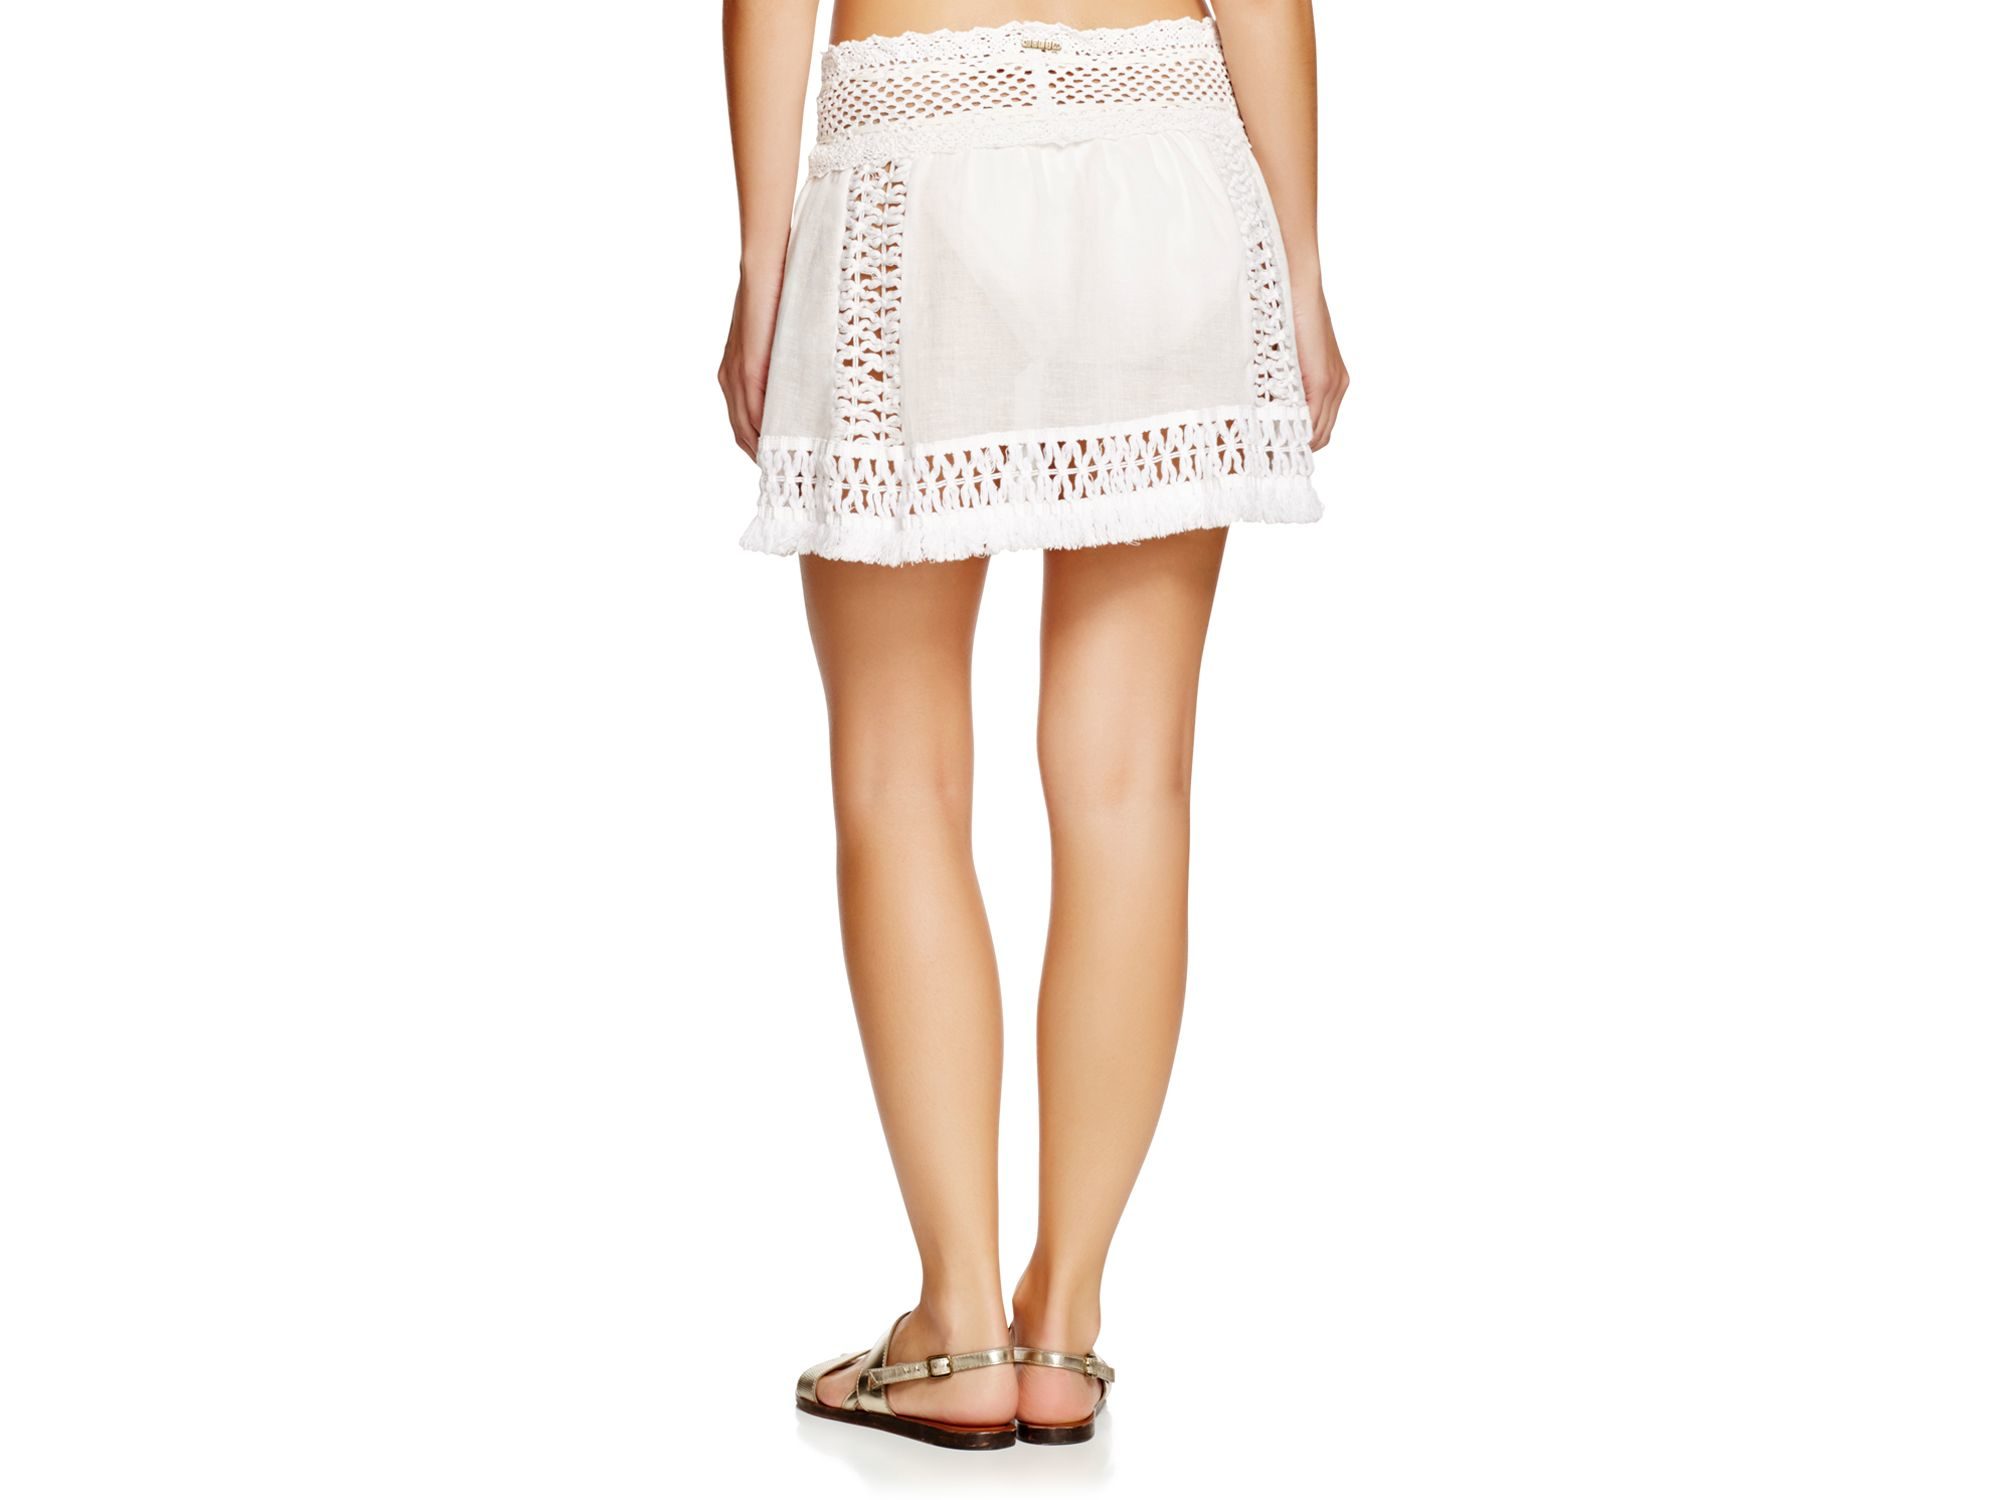 Sofia by vix Solid White Crochet Skirt Swim Cover Up in ...